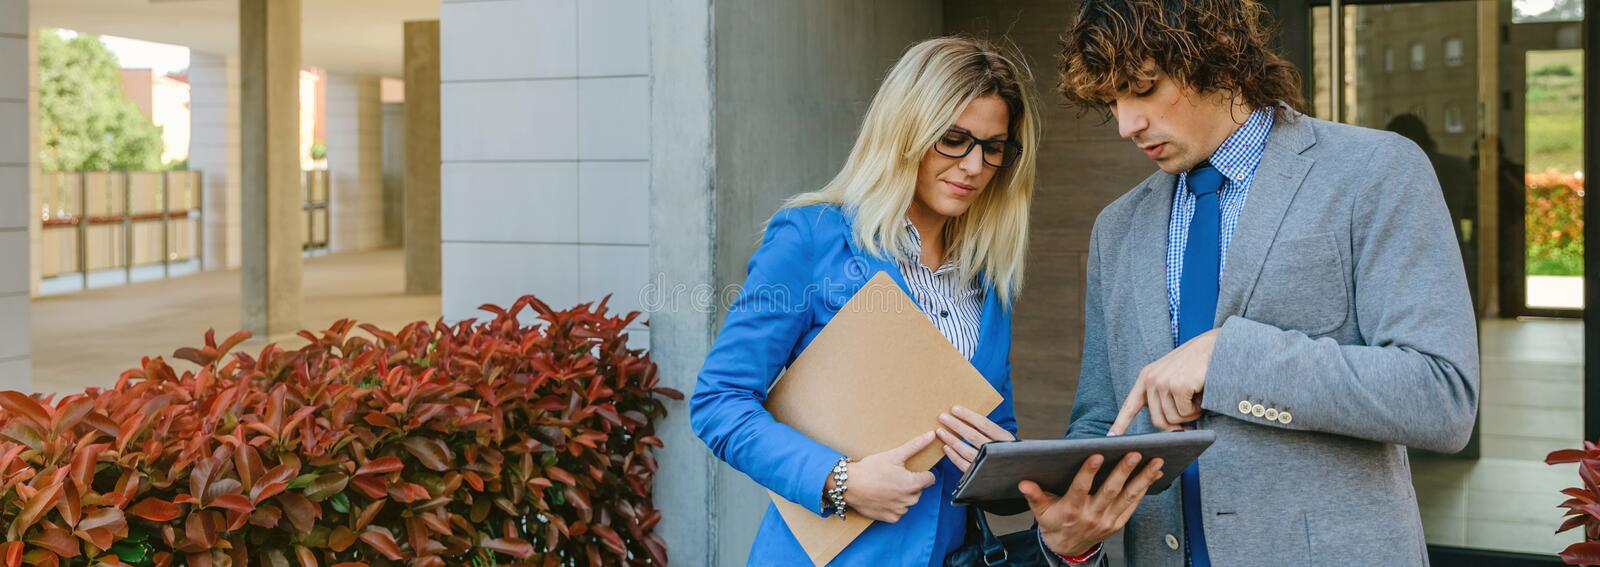 Businesspeople checking documents in the street stock images